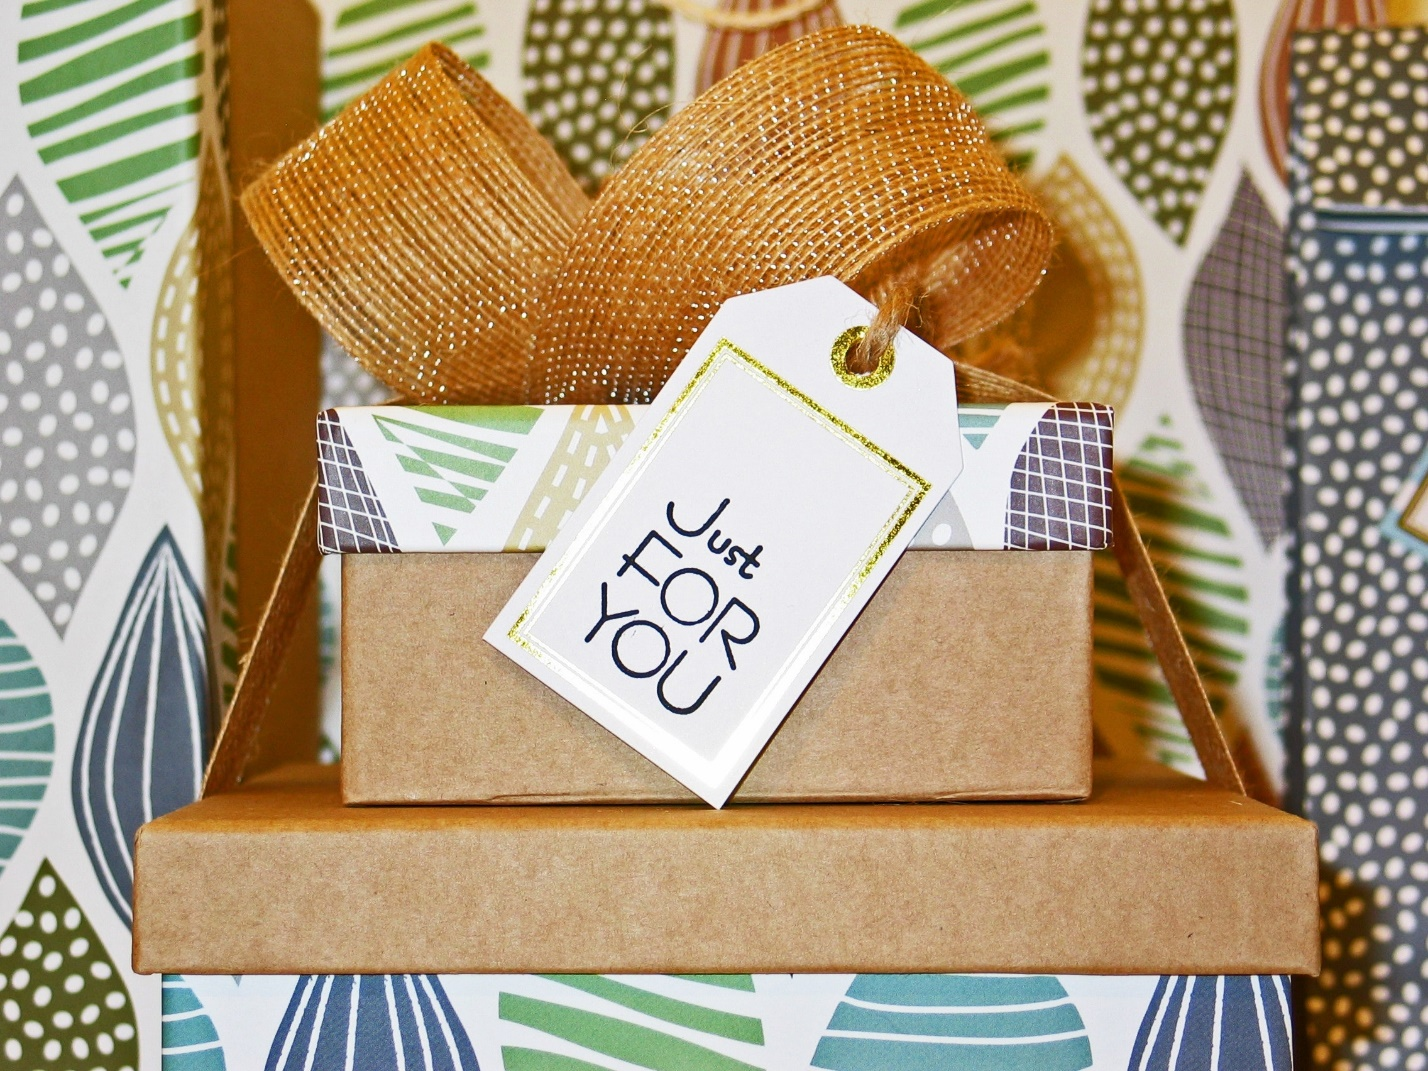 6 Ways to Make Your Gifts More Thoughtful for Anyone in Your Life